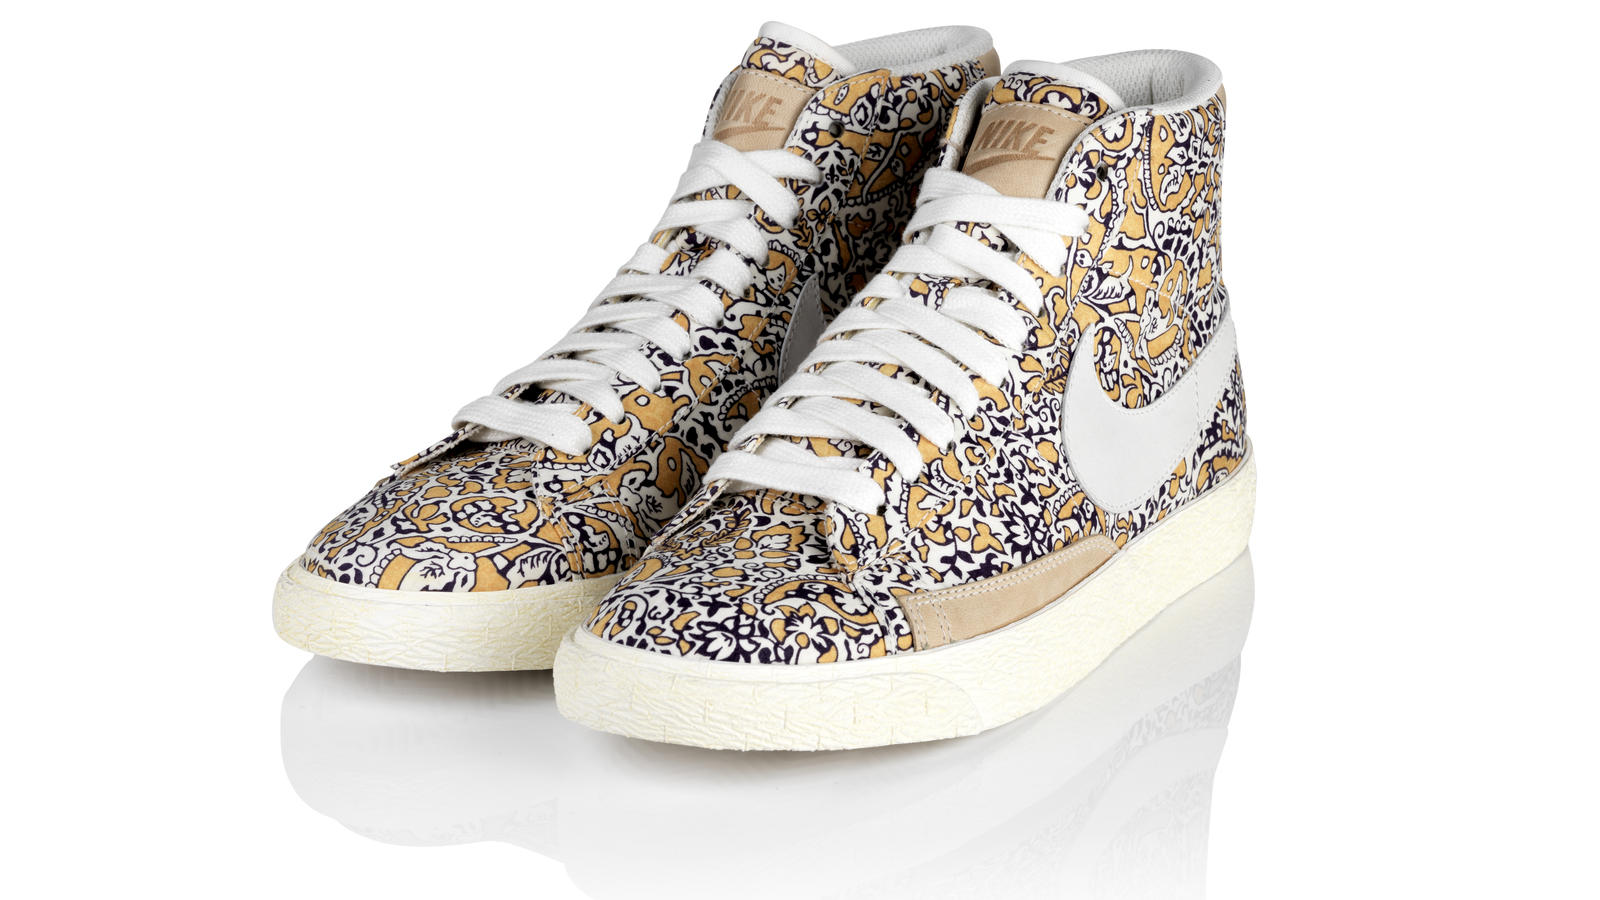 best service e8c2d a4c11 Nike Sportswear x Liberty Collection - Nike News